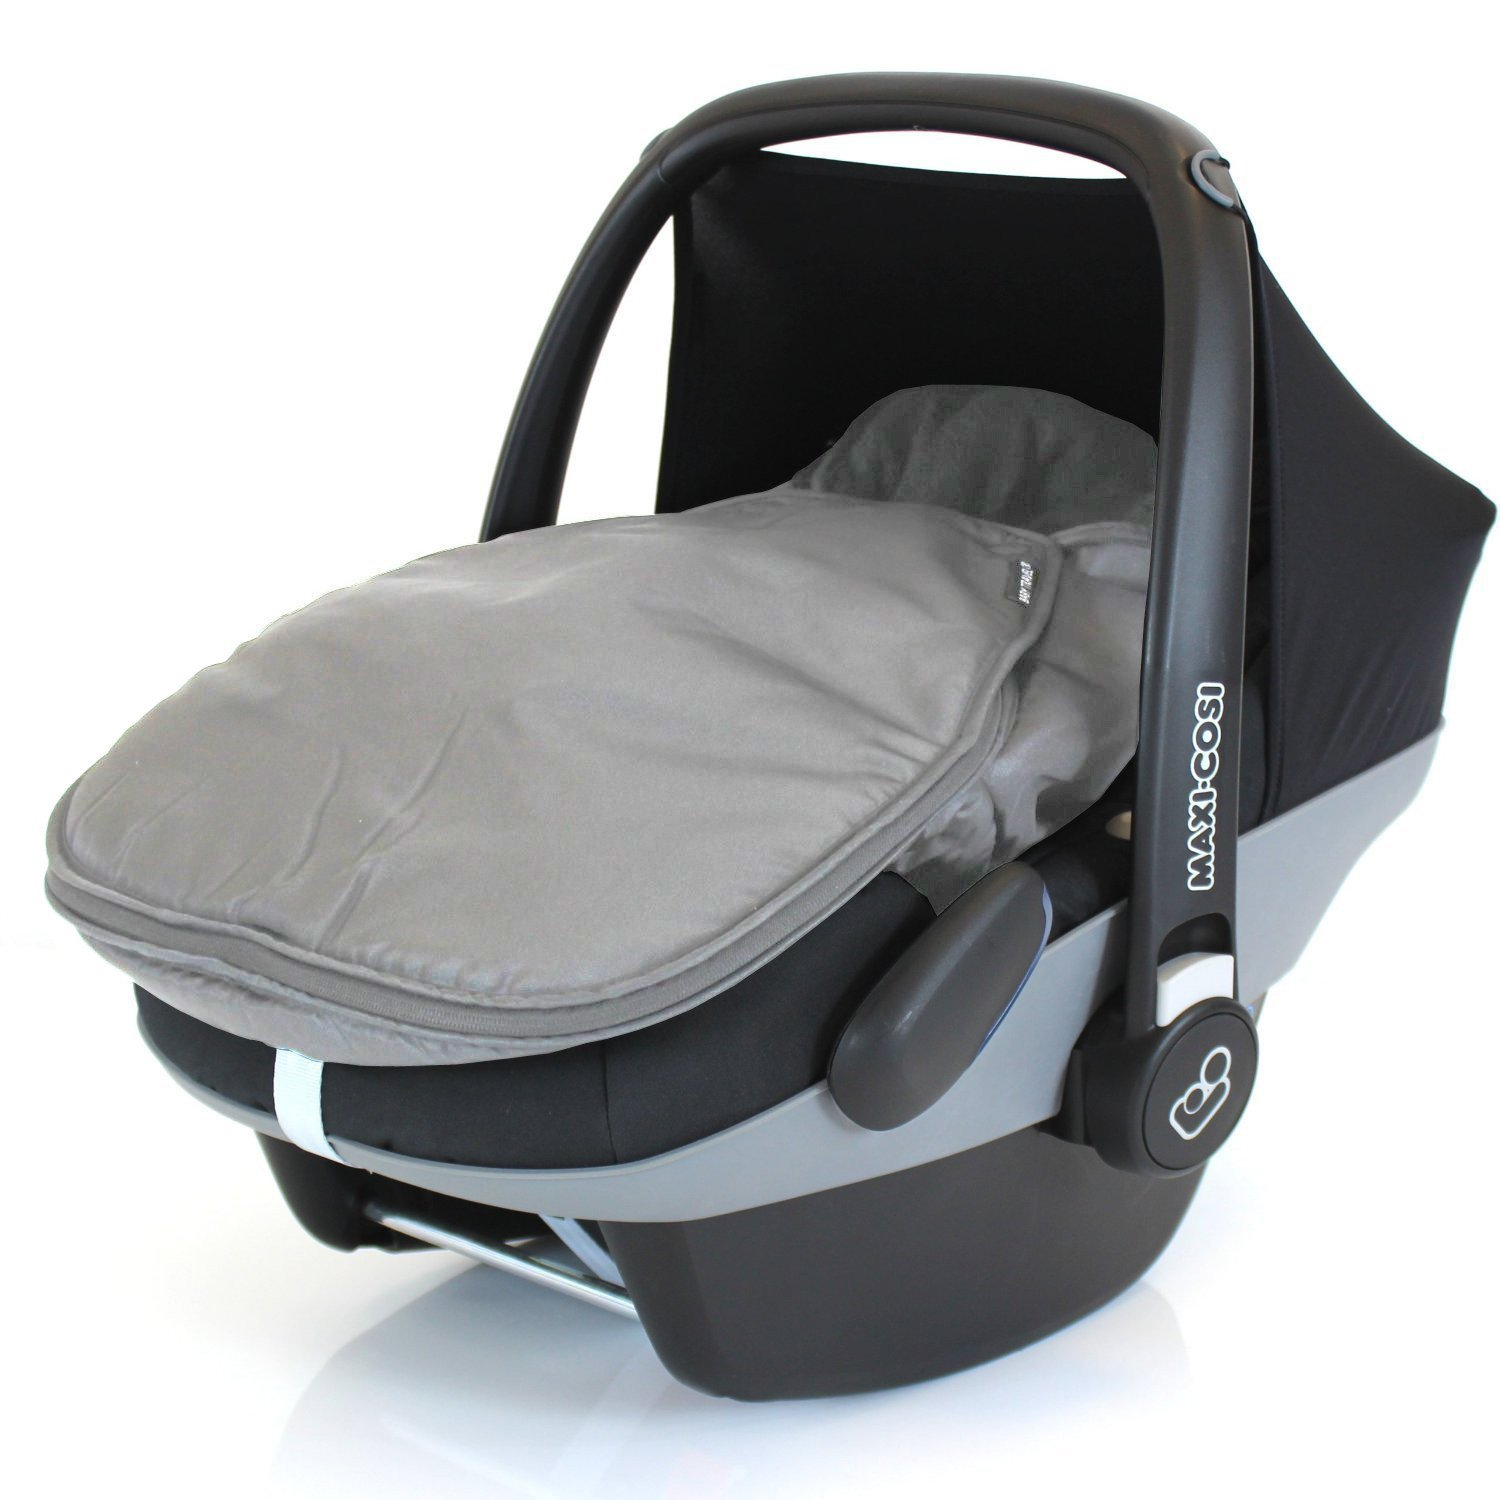 Carseat Footmuff Fits All Car Seats Cabrio, Graco, Pebble, Chicco, Cosatto Baby Travel